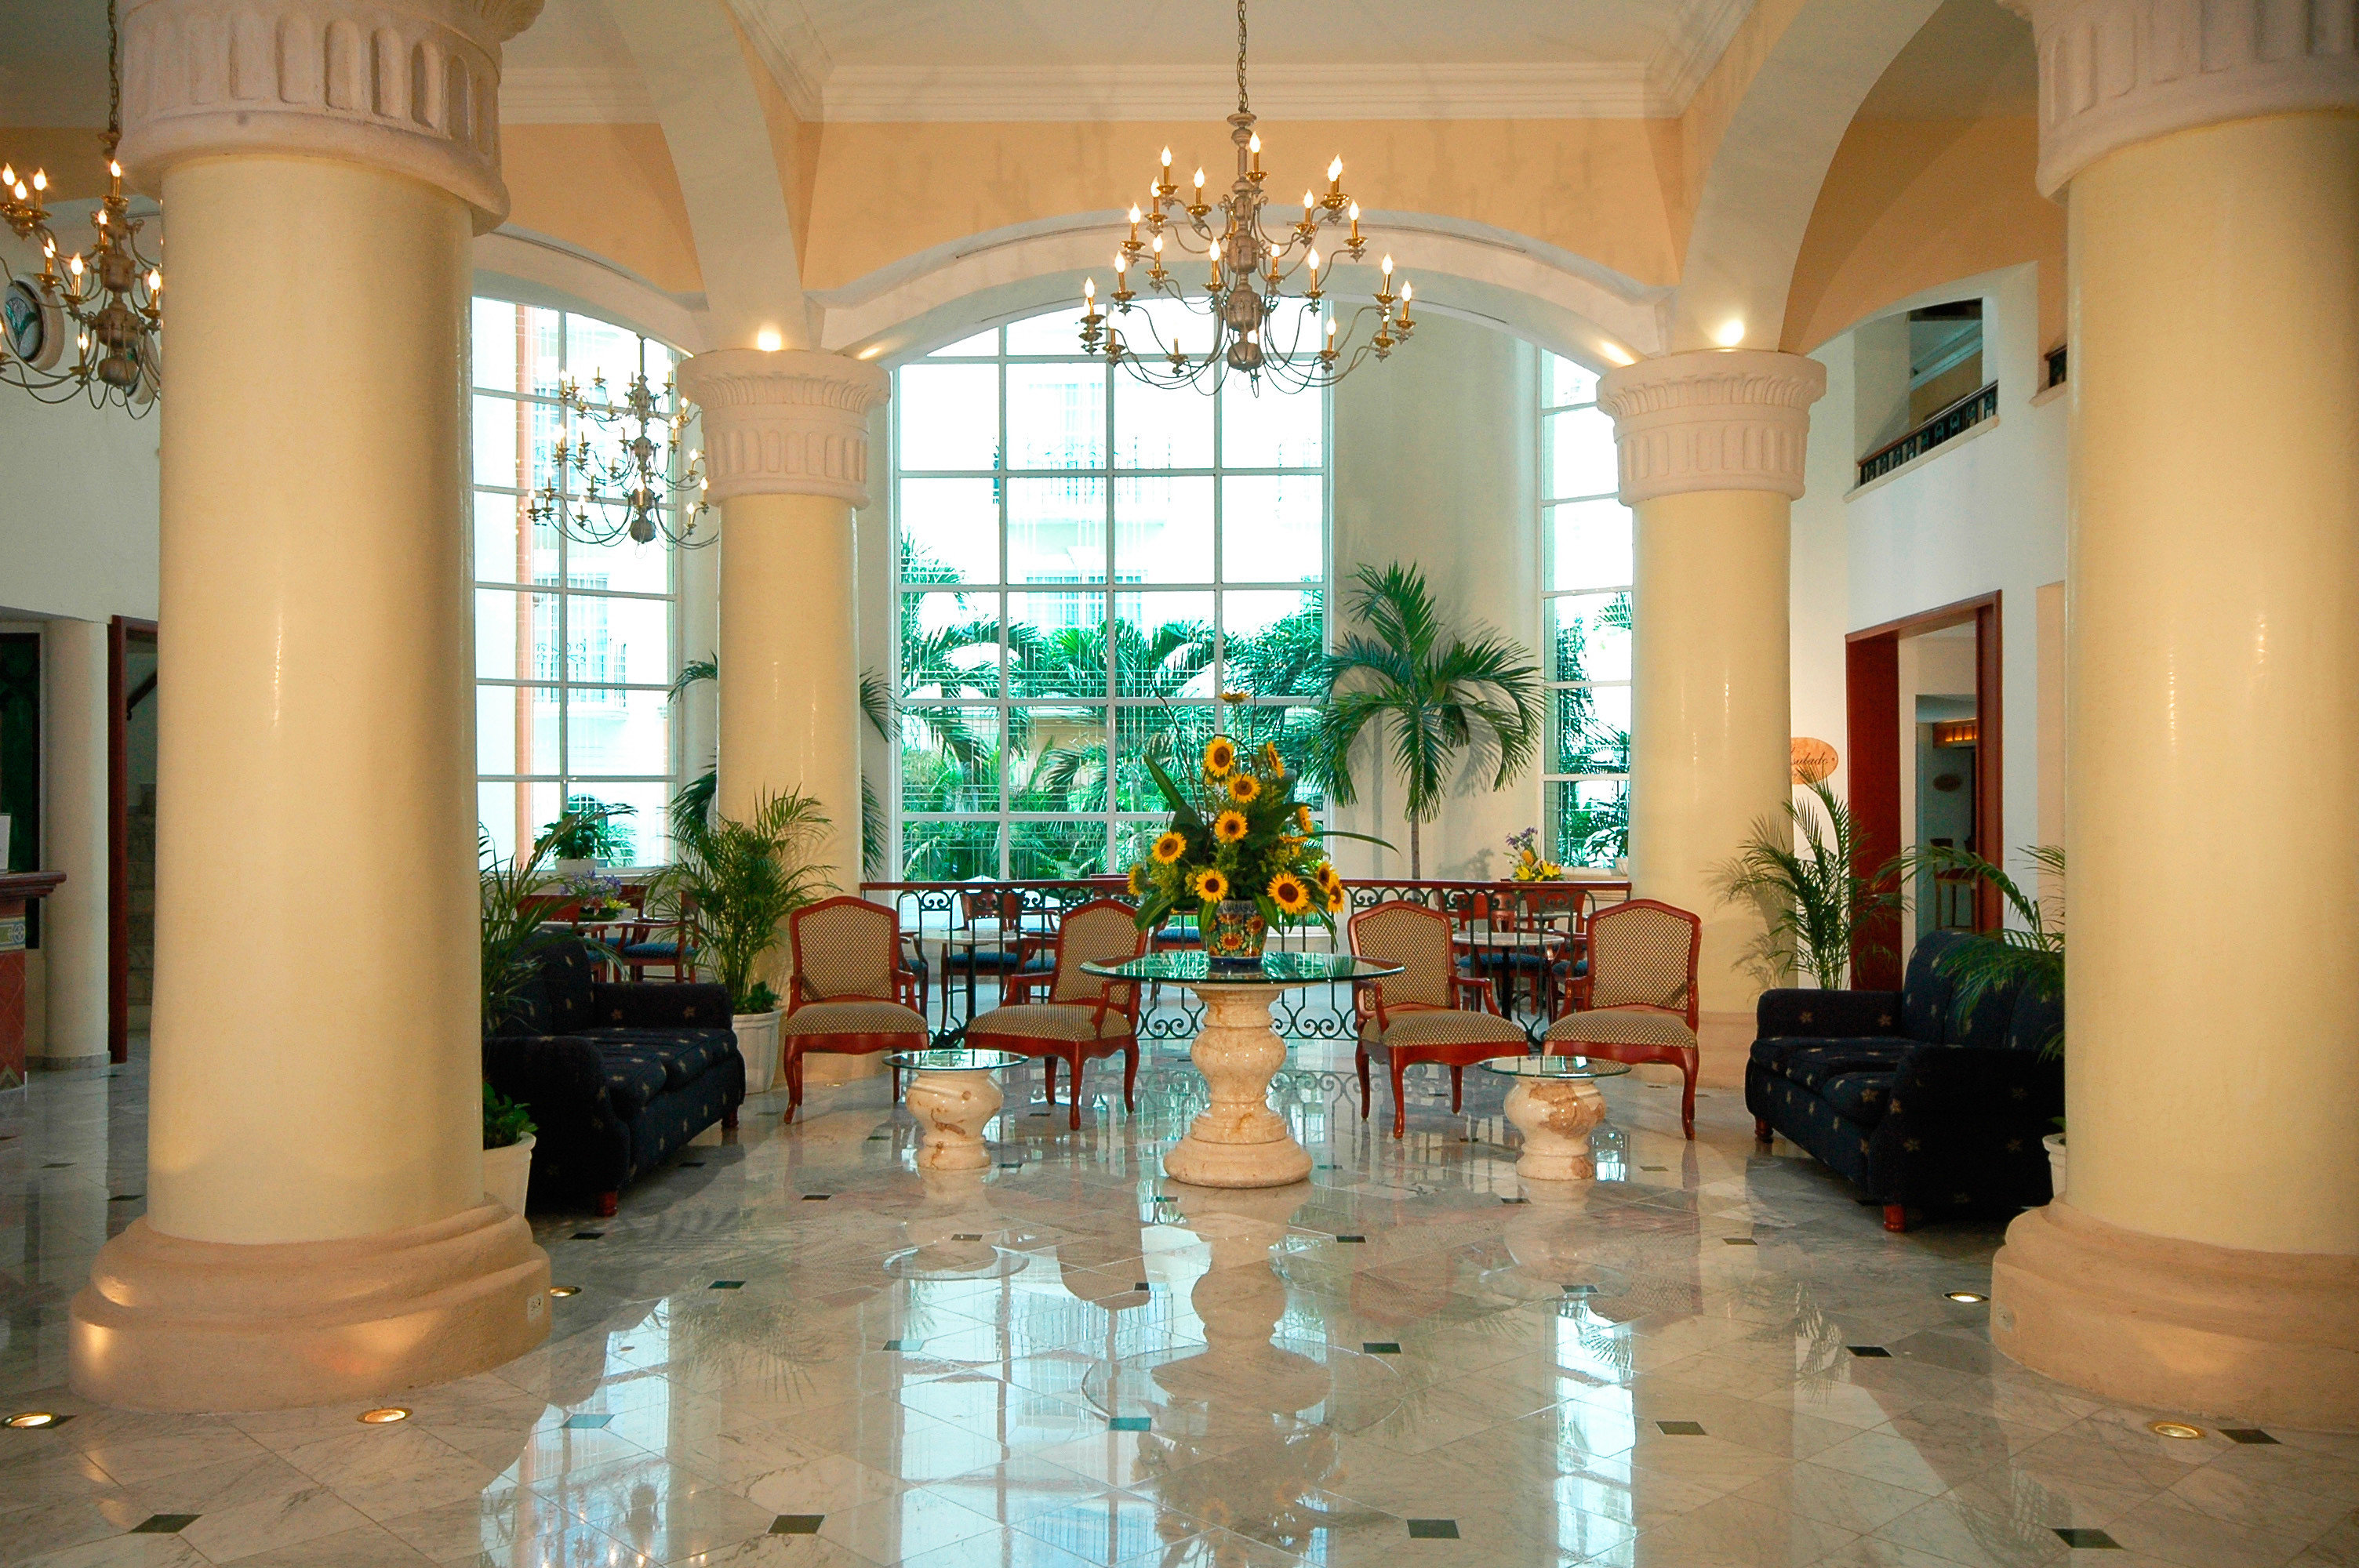 Architecture Buildings Lounge Resort Lobby building palace home aisle mansion ballroom tourist attraction hall flooring